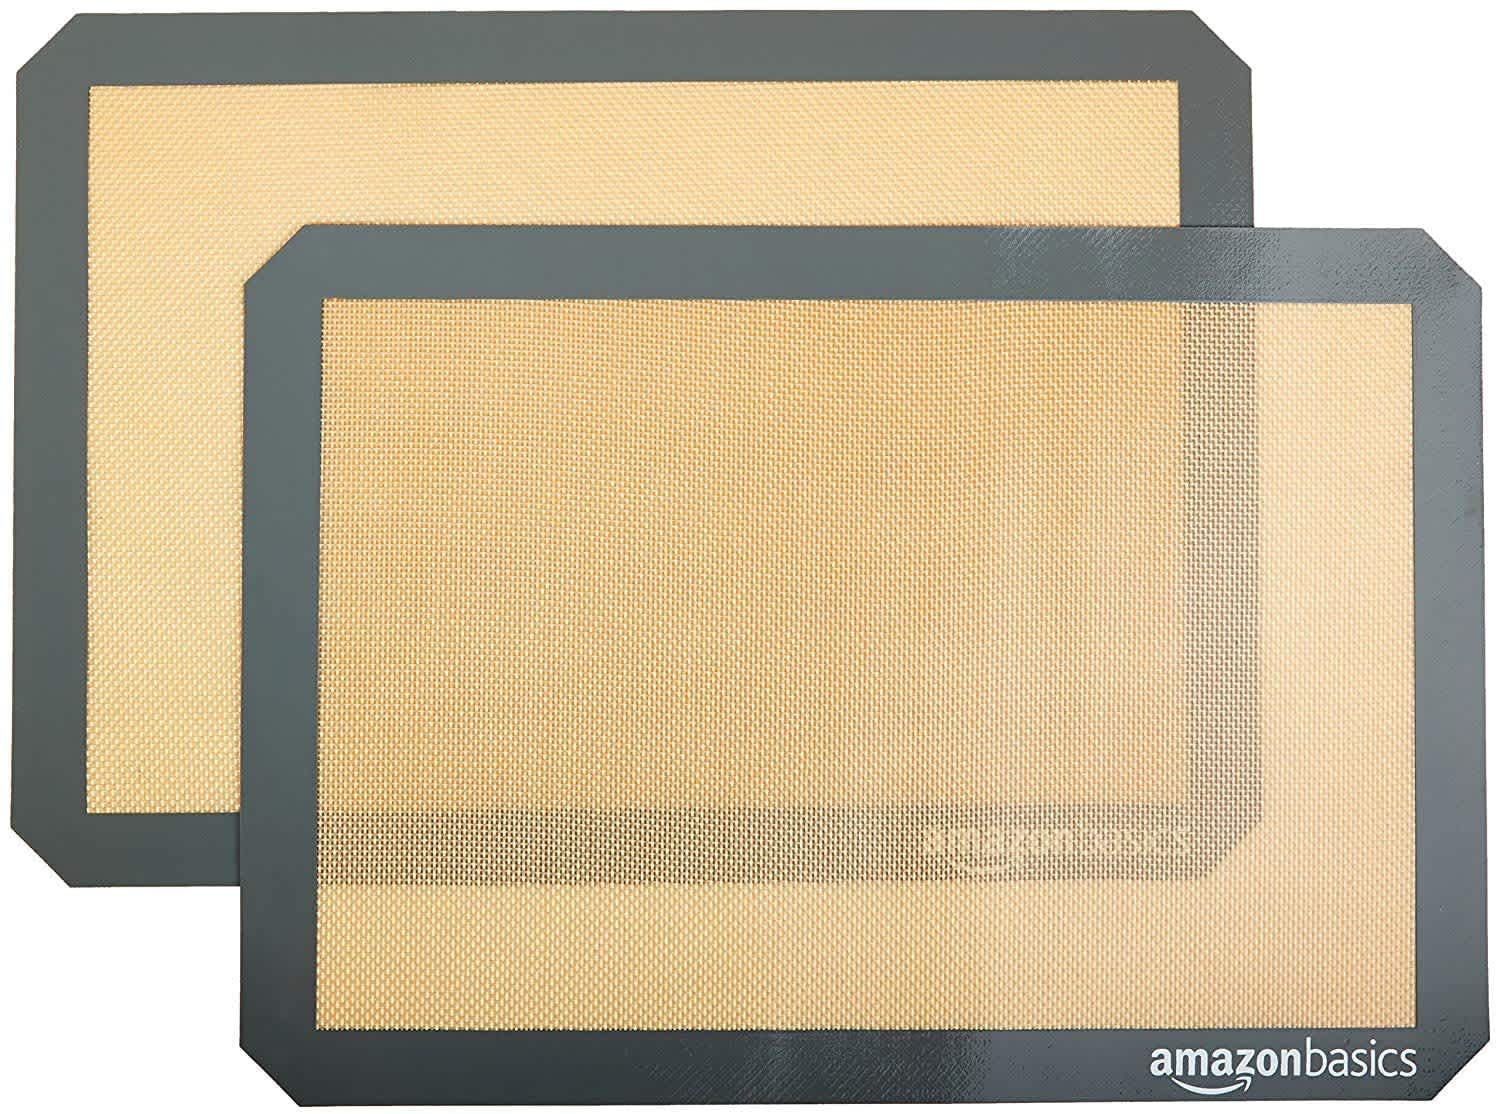 AmazonBasics Silicone Baking Mat Sheet 2-Pack